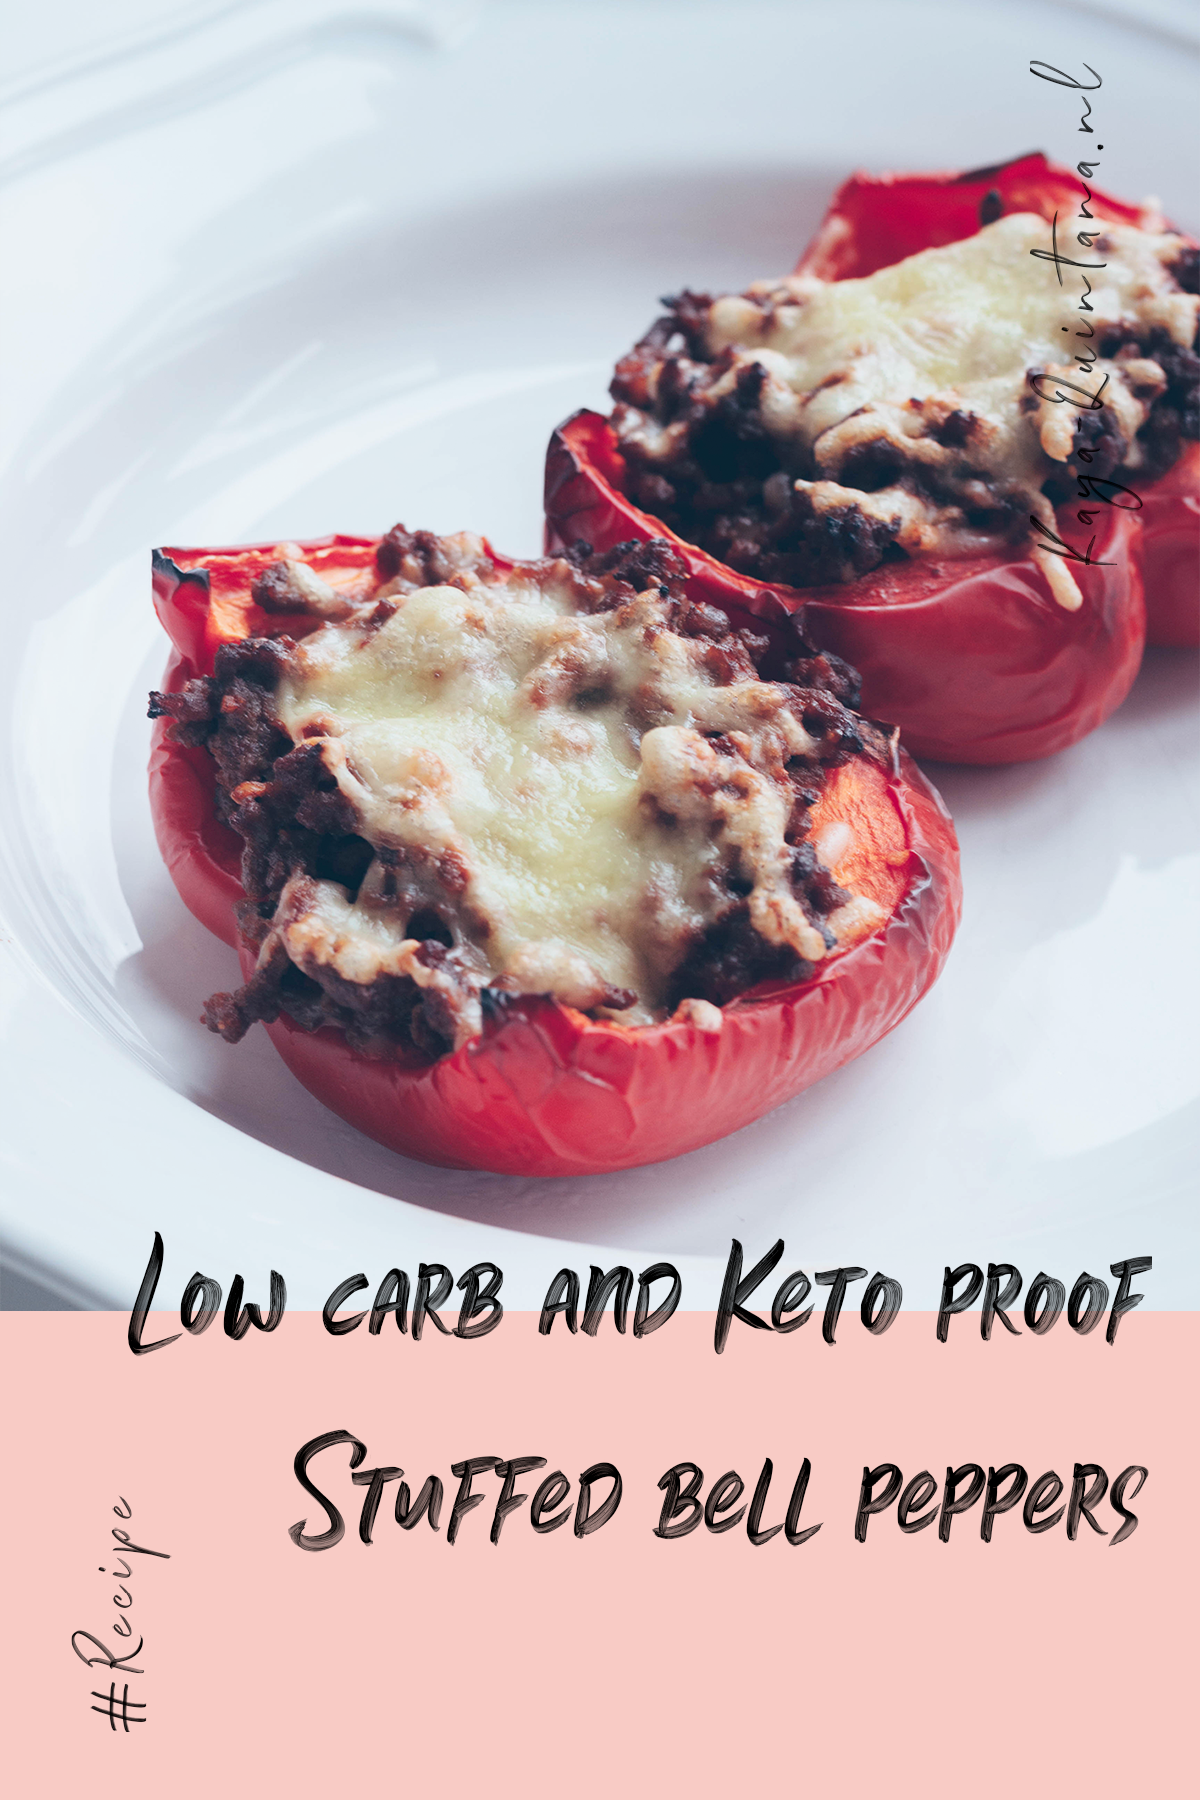 low carb and keto proof stuffed bell peppers